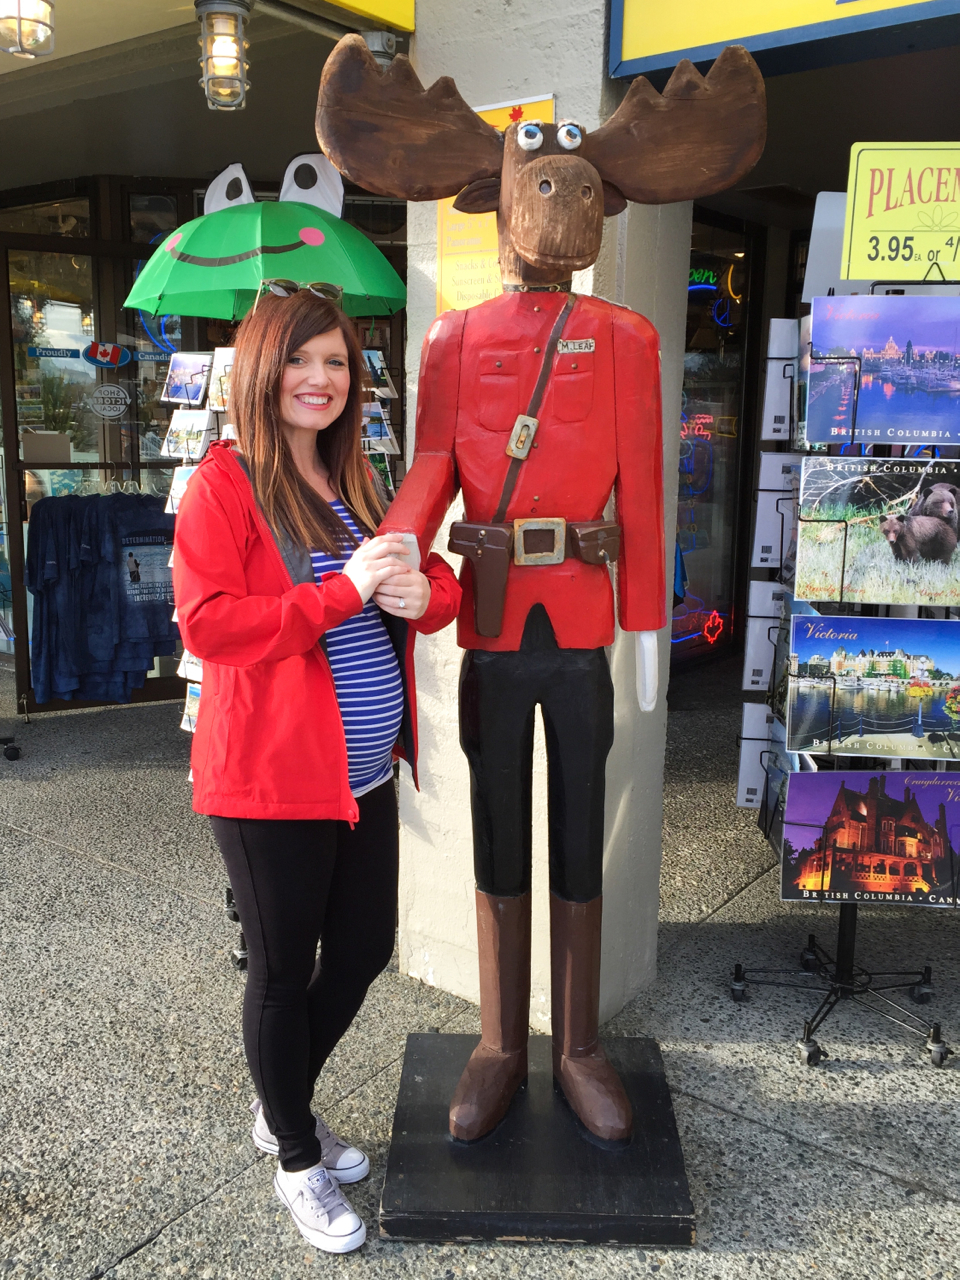 Meeting Bullwinkle the Canadian Mountie